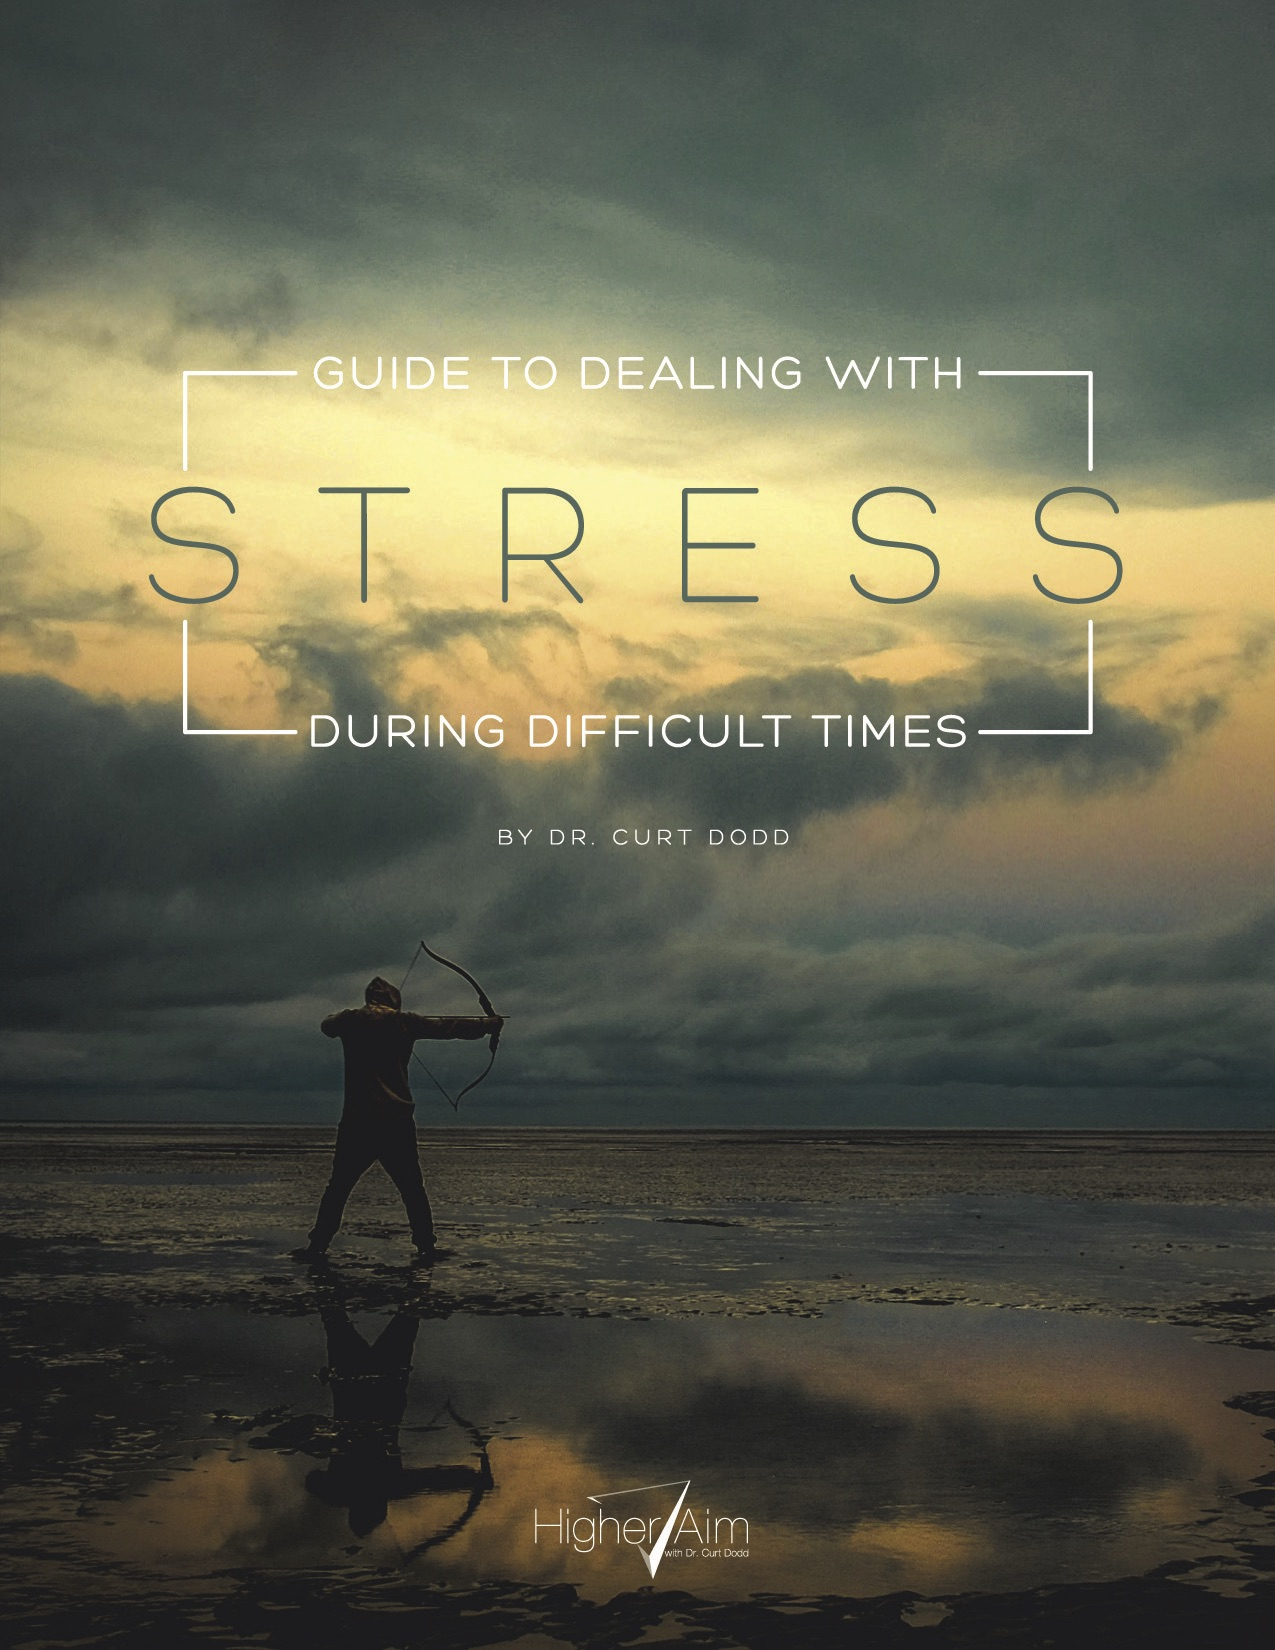 Guide To Dealing With Stress During Difficult Times_draft